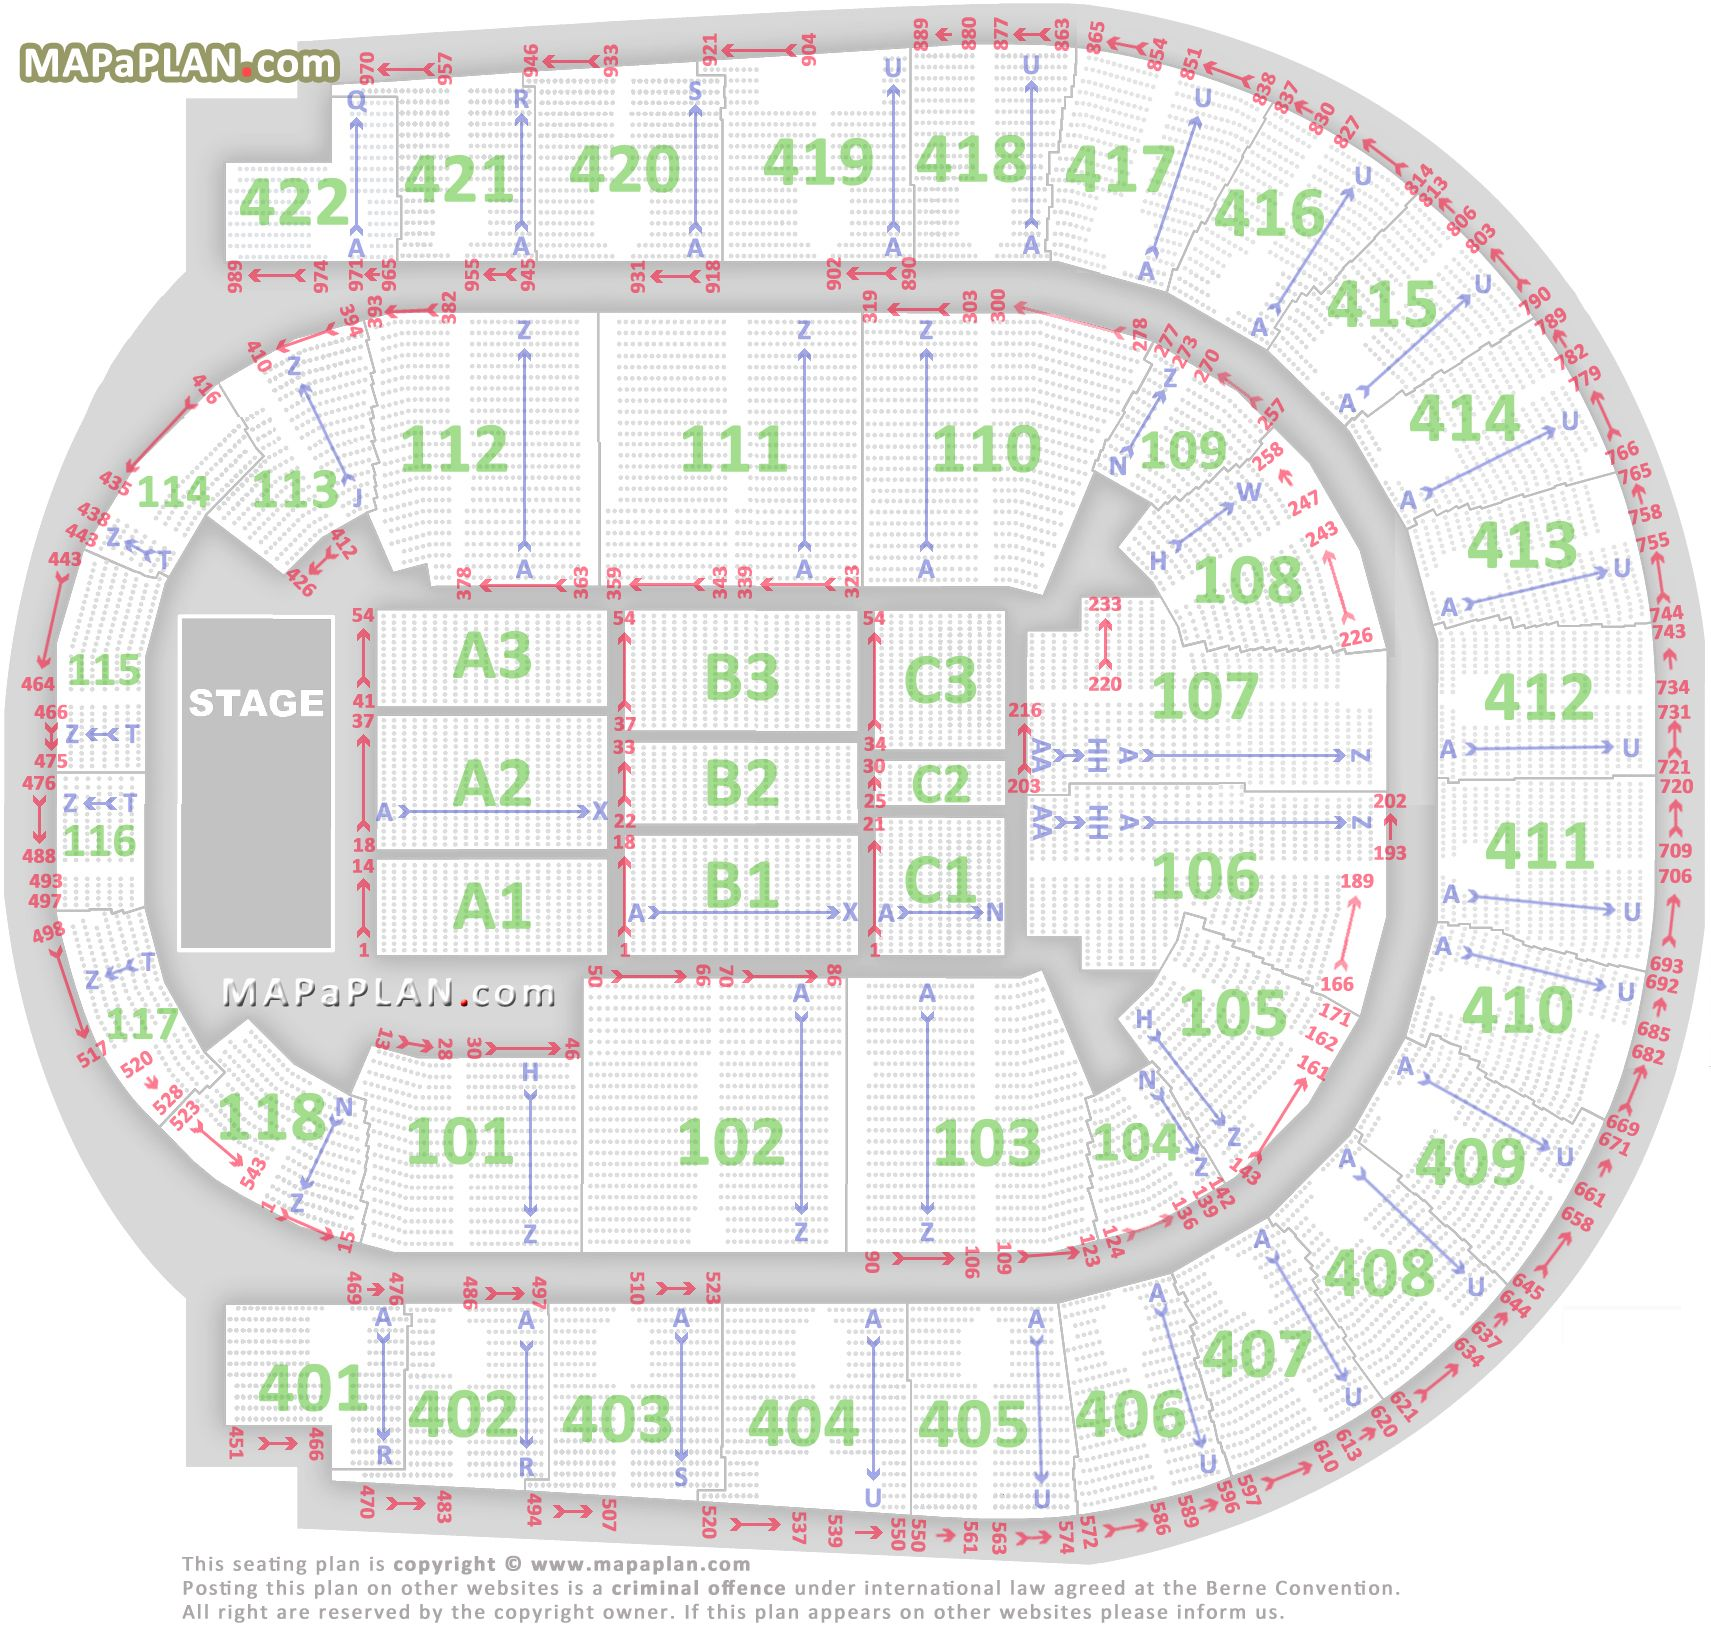 the o2 arena london seating plan detailed seats rows and blocks numbers chart [ 1711 x 1625 Pixel ]